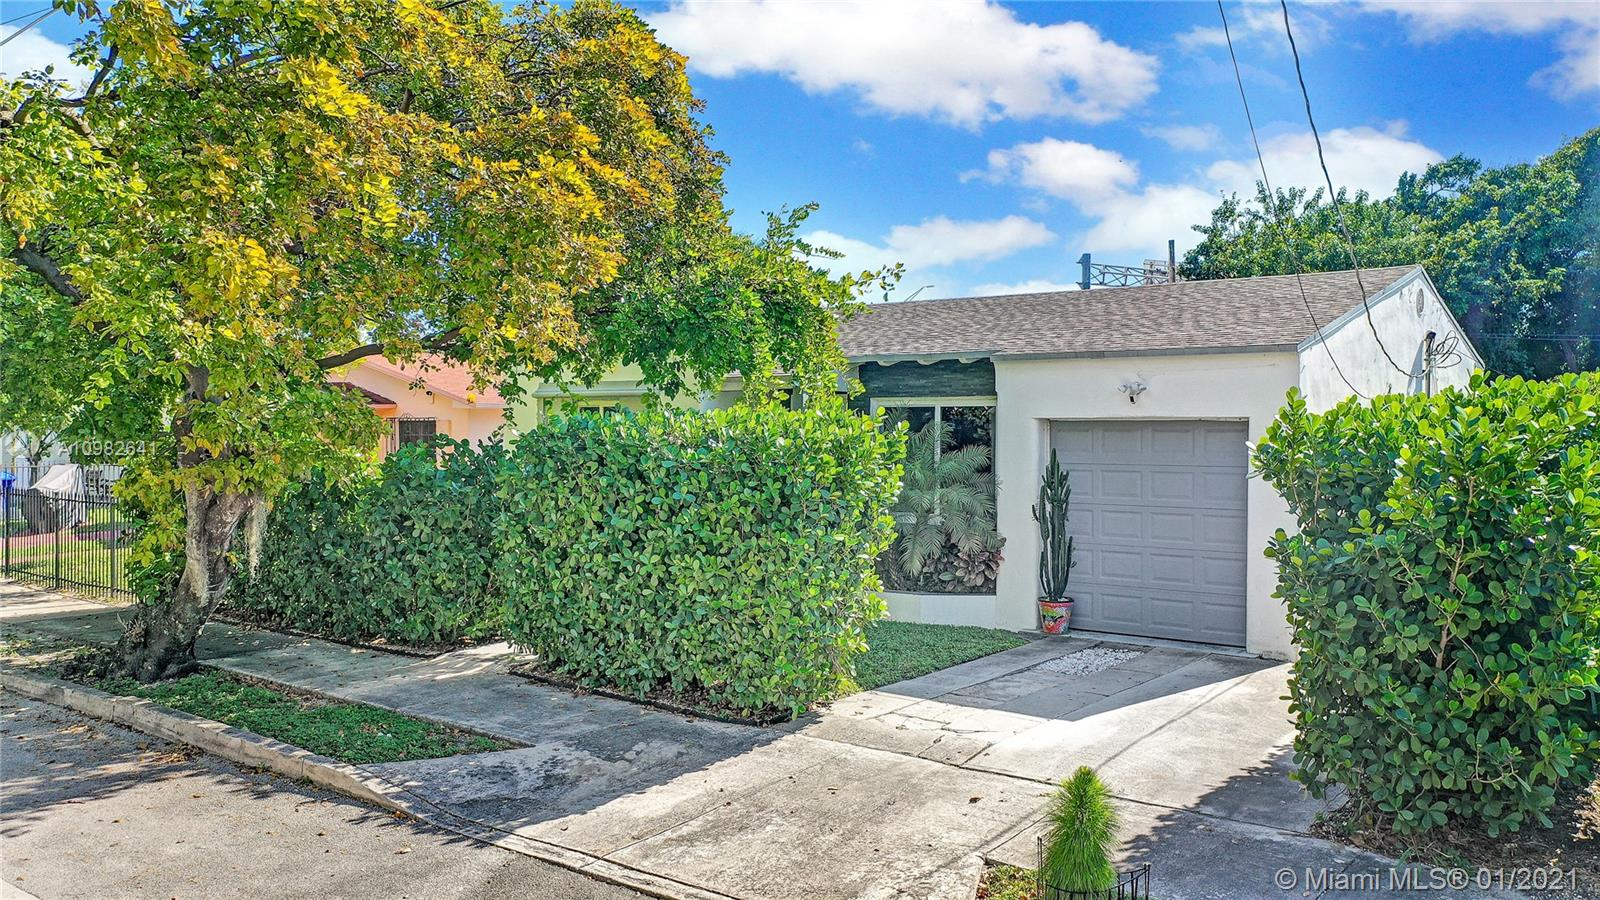 Details for 410 40th St, Miami, FL 33127